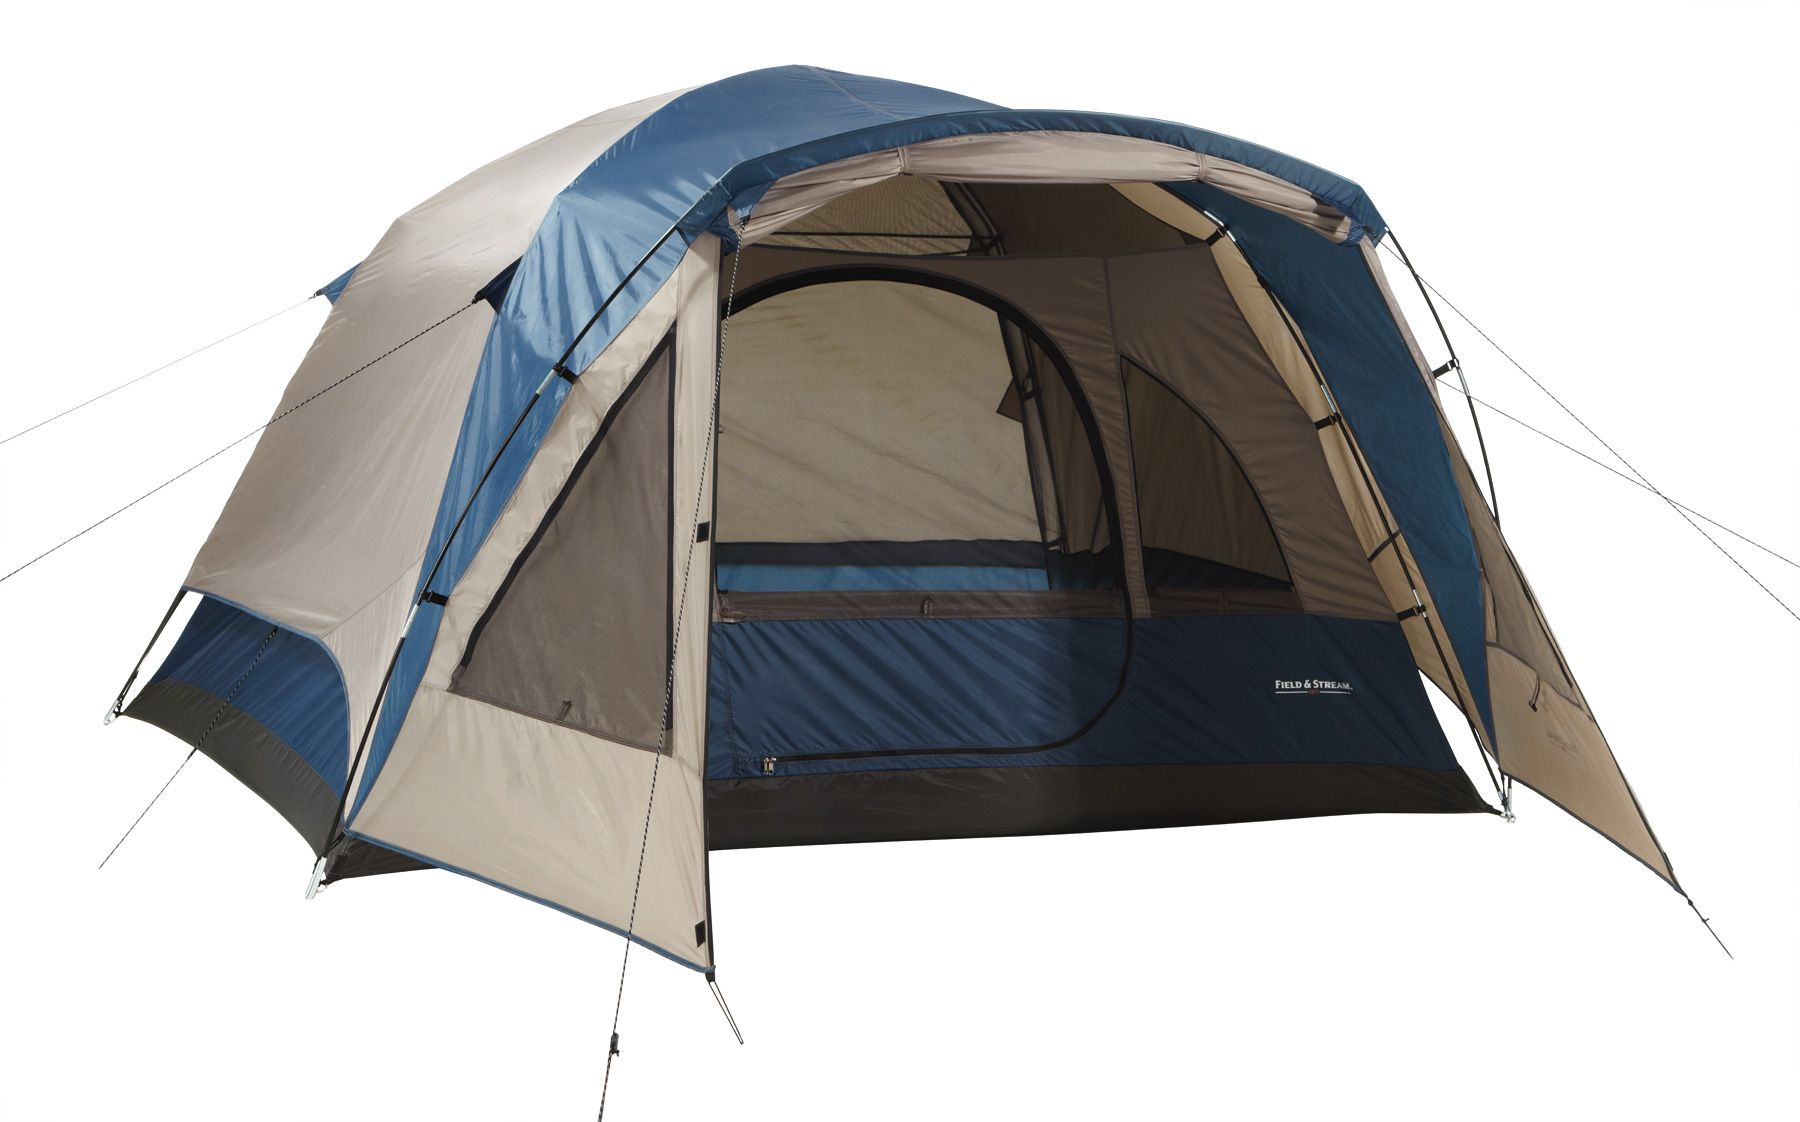 Field Amp Stream Wilderness Lodge 4 Person Tent Dick S